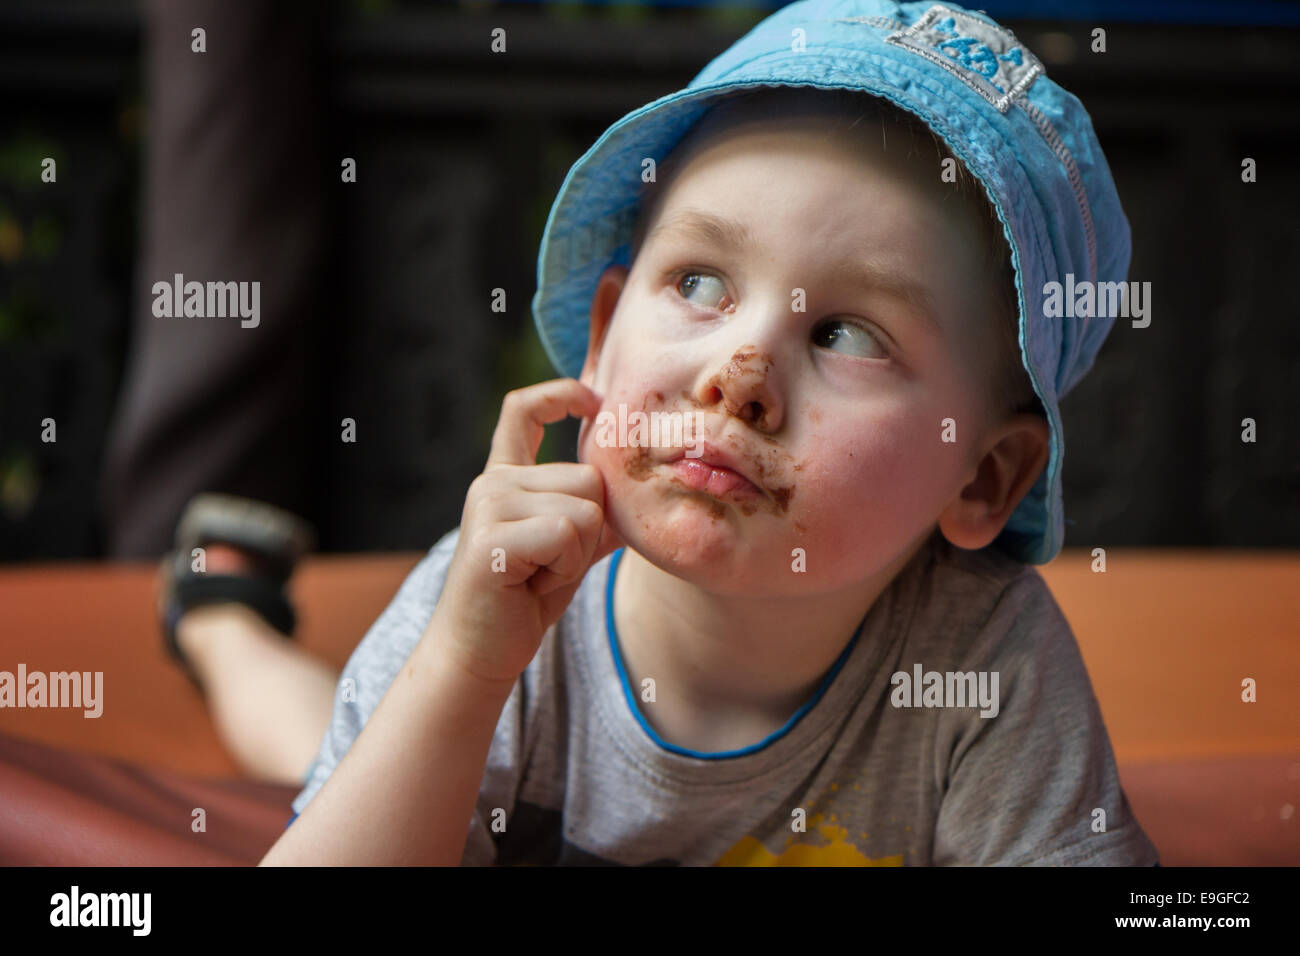 Closeup of a small boy pondering, face smudged with chocolate - Stock Image